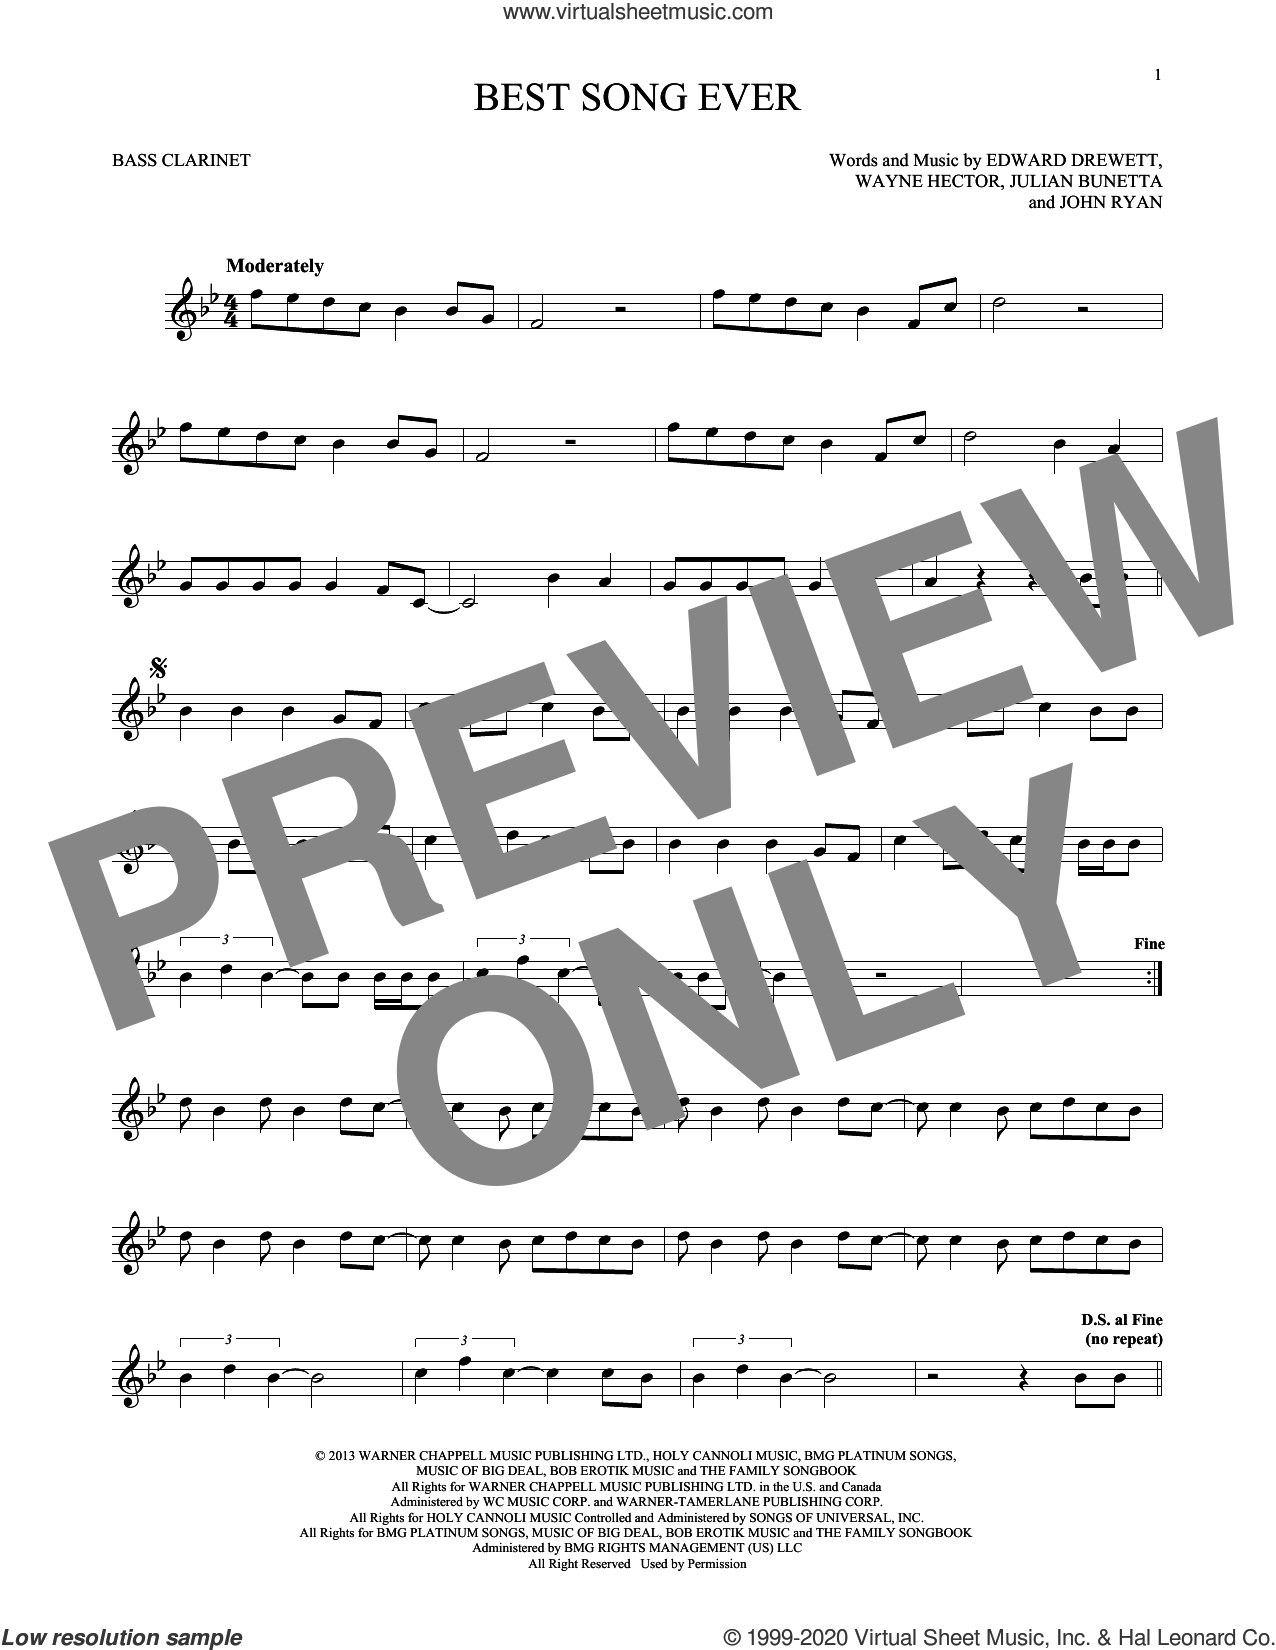 Best Song Ever sheet music for Bass Clarinet Solo (clarinetto basso) by One Direction, Edward Drewett, John Ryan, Julian Bunetta and Wayne Hector, intermediate skill level